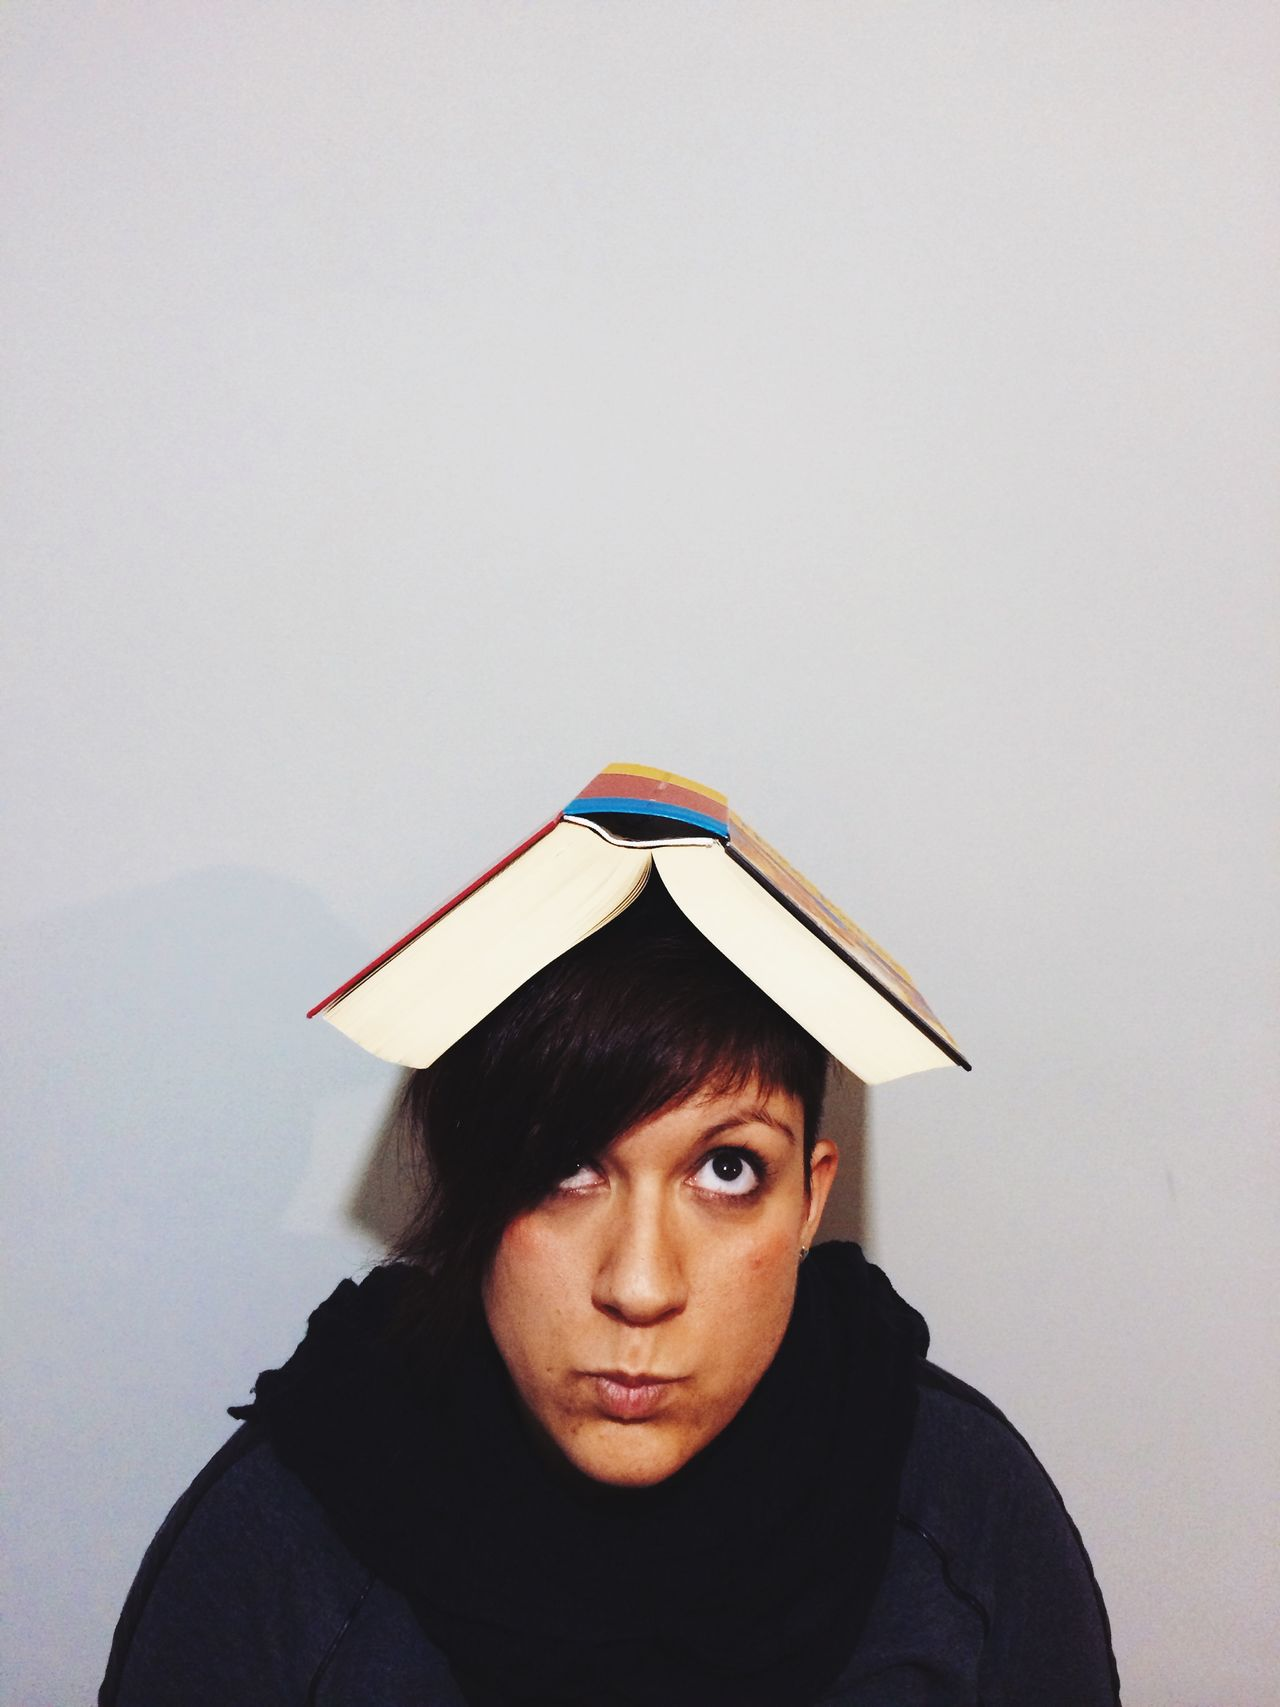 Beautiful stock photos of student, Balancing, Book, Concentration, Copy Space